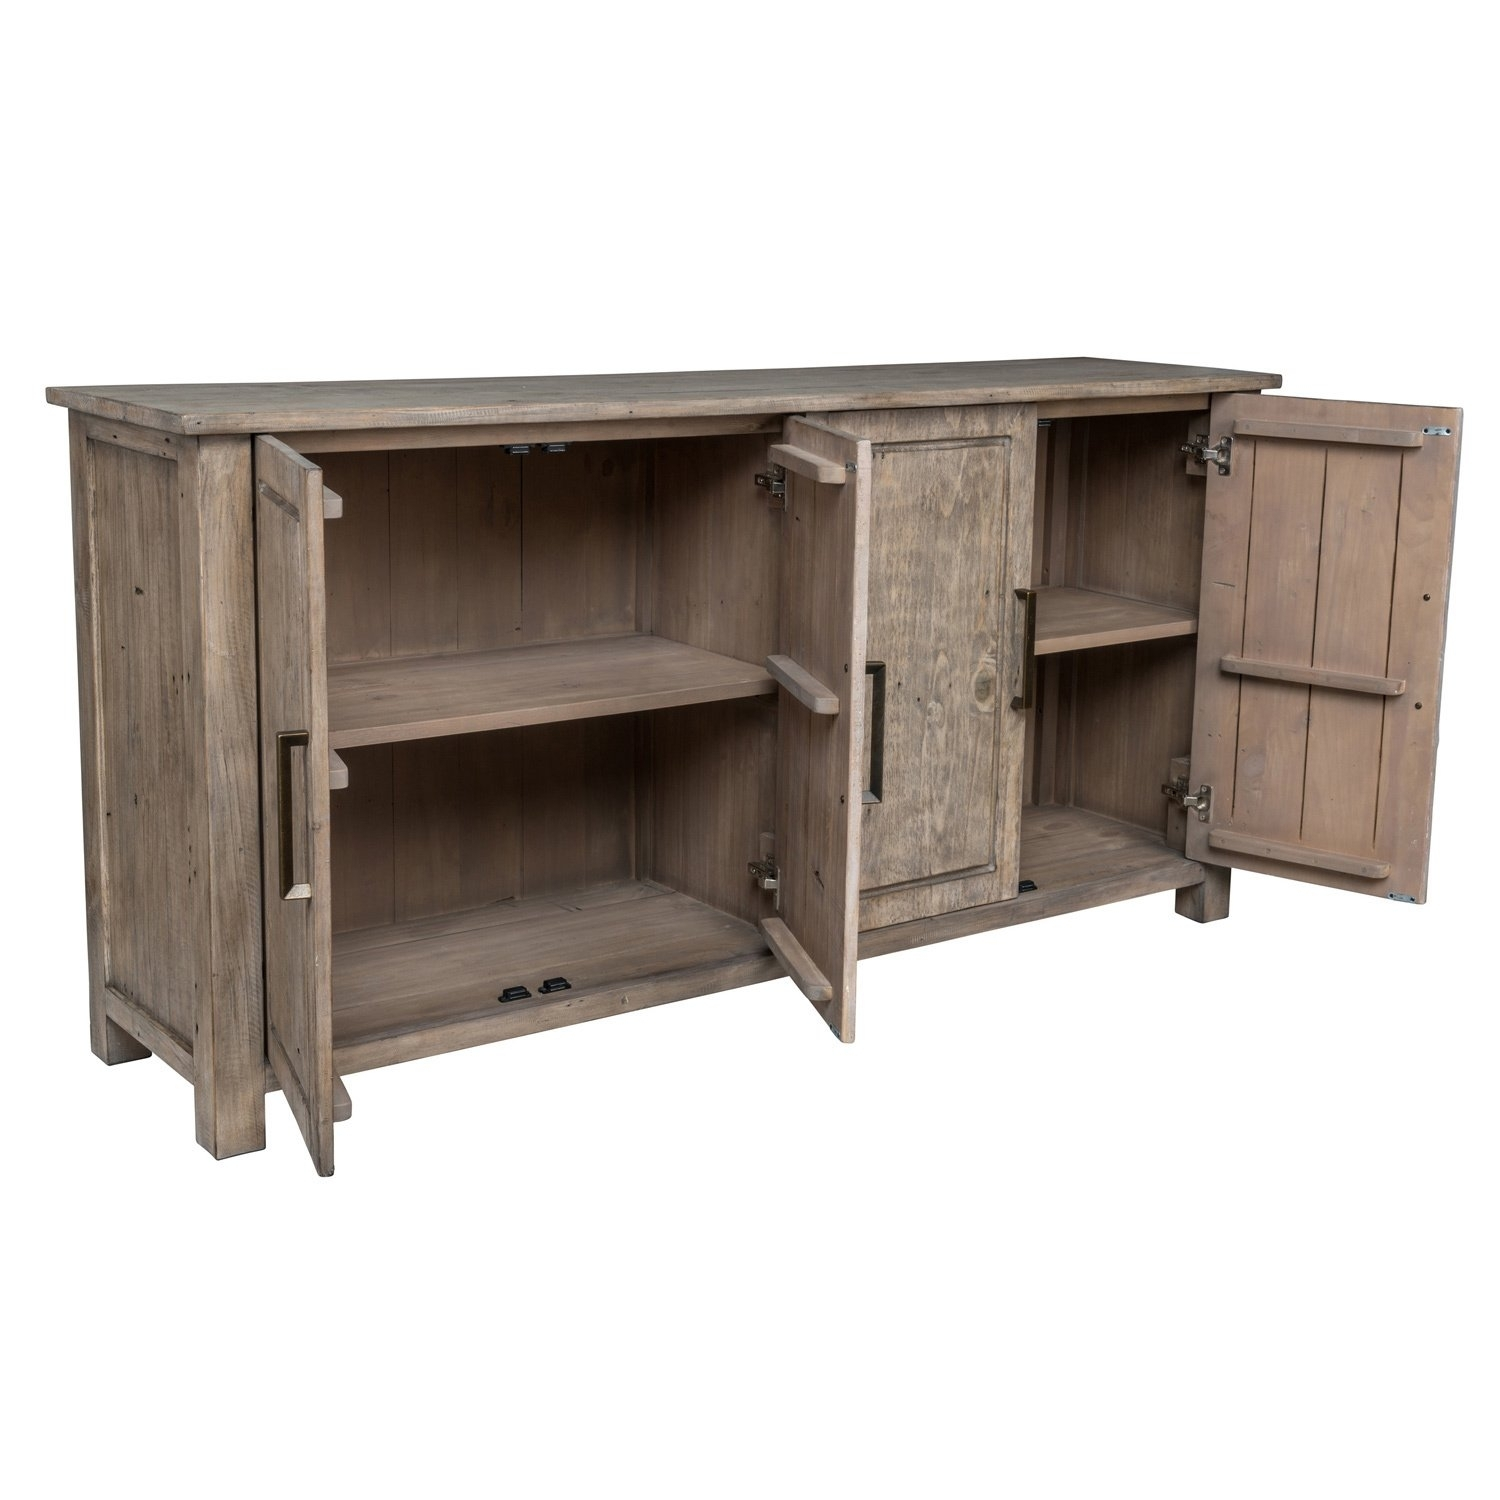 Shop Aires Reclaimed Wood 72-Inch Sideboardkosas Home - Free for Reclaimed Pine & Iron 72 Inch Sideboards (Image 16 of 30)